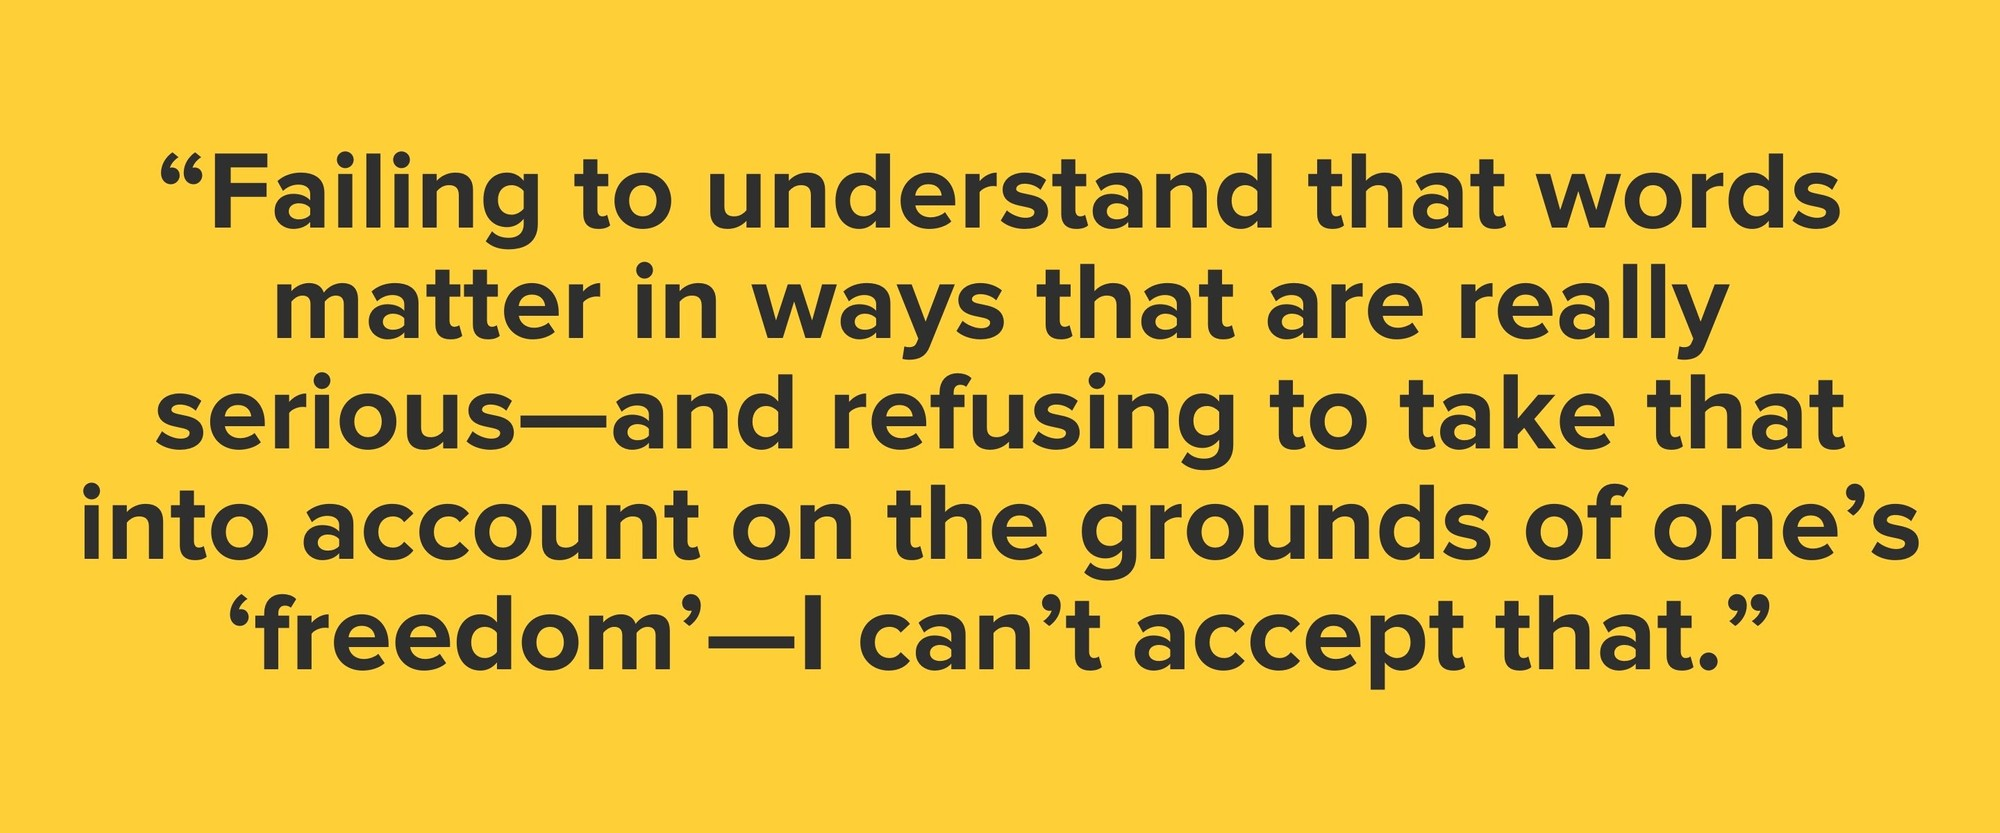 """""""Failing to understand that words matter in ways that are really serious—and refusing to take that into account on the grounds of one's 'freedom'—I can't accept that."""""""